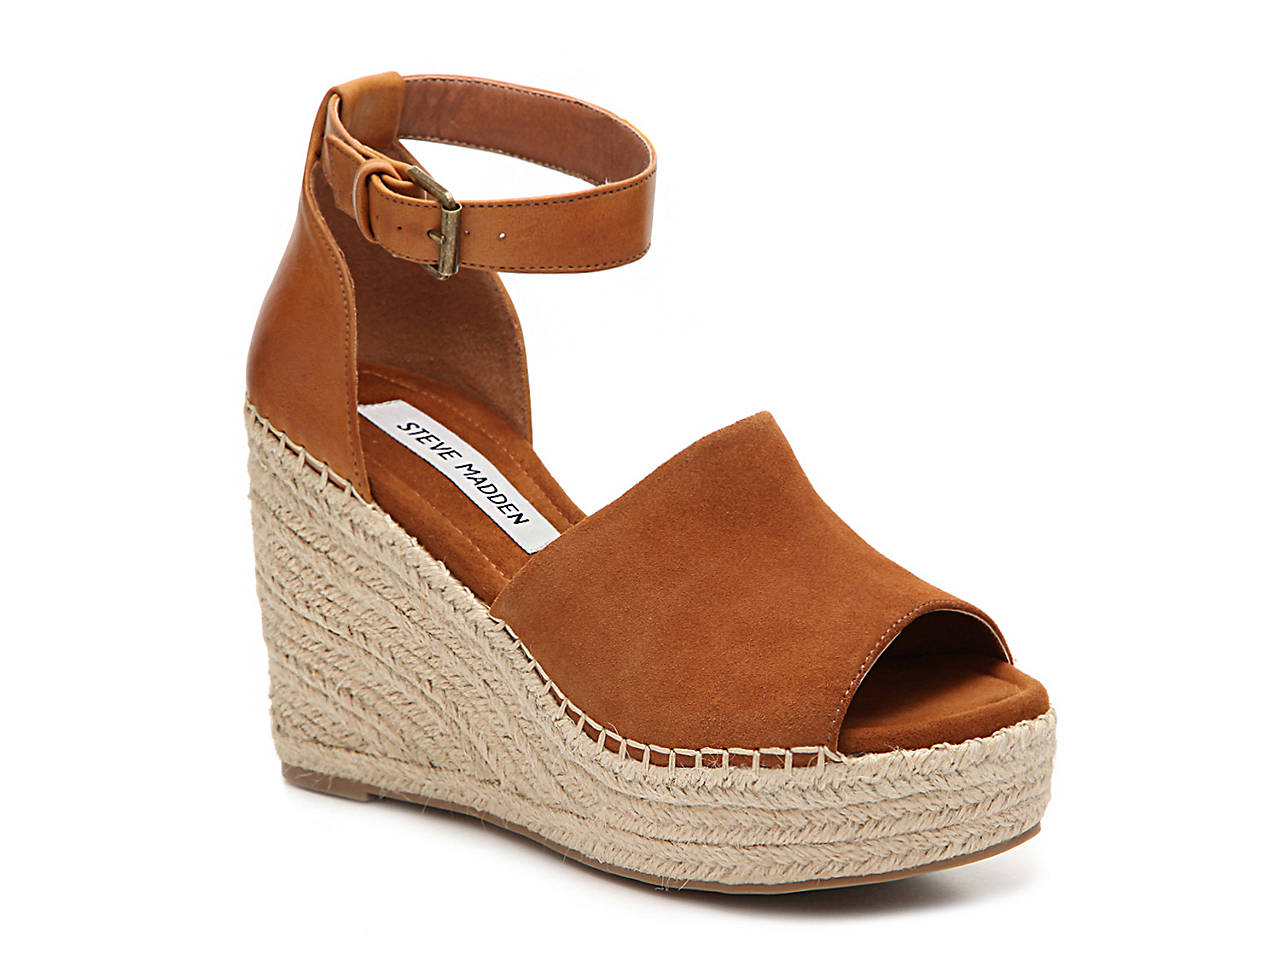 082df09c4a3 Steve Madden Jaylen Wedge Sandal Women s Shoes